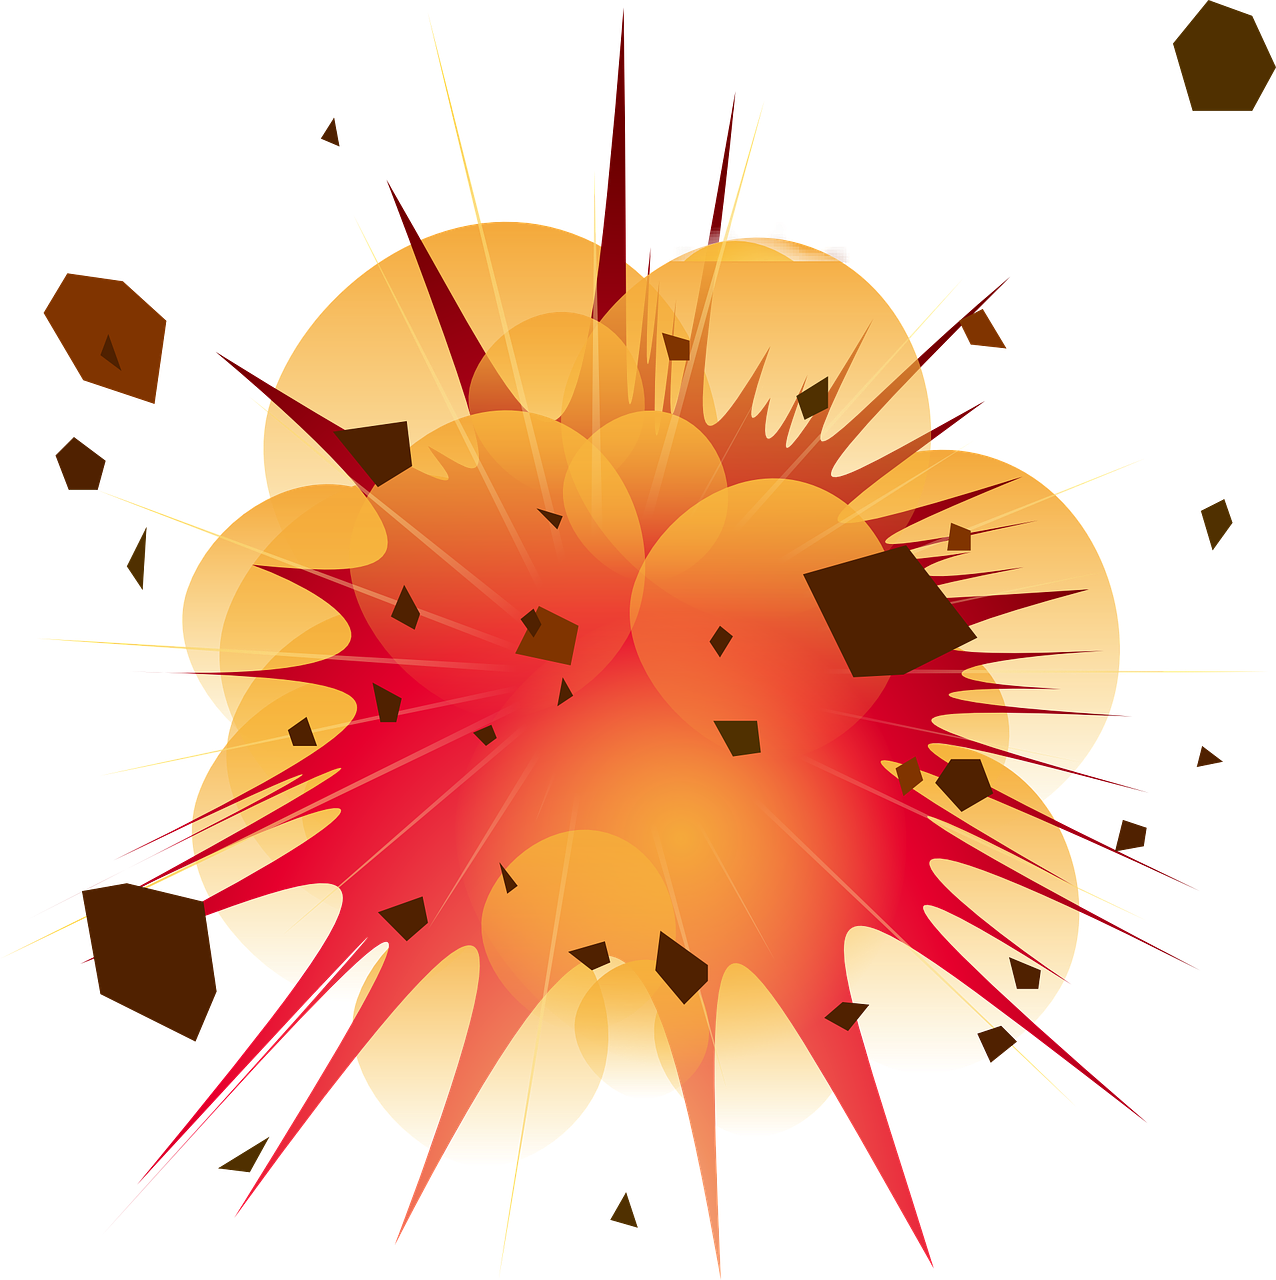 Clipart explosion rocket explosion. How to verify a